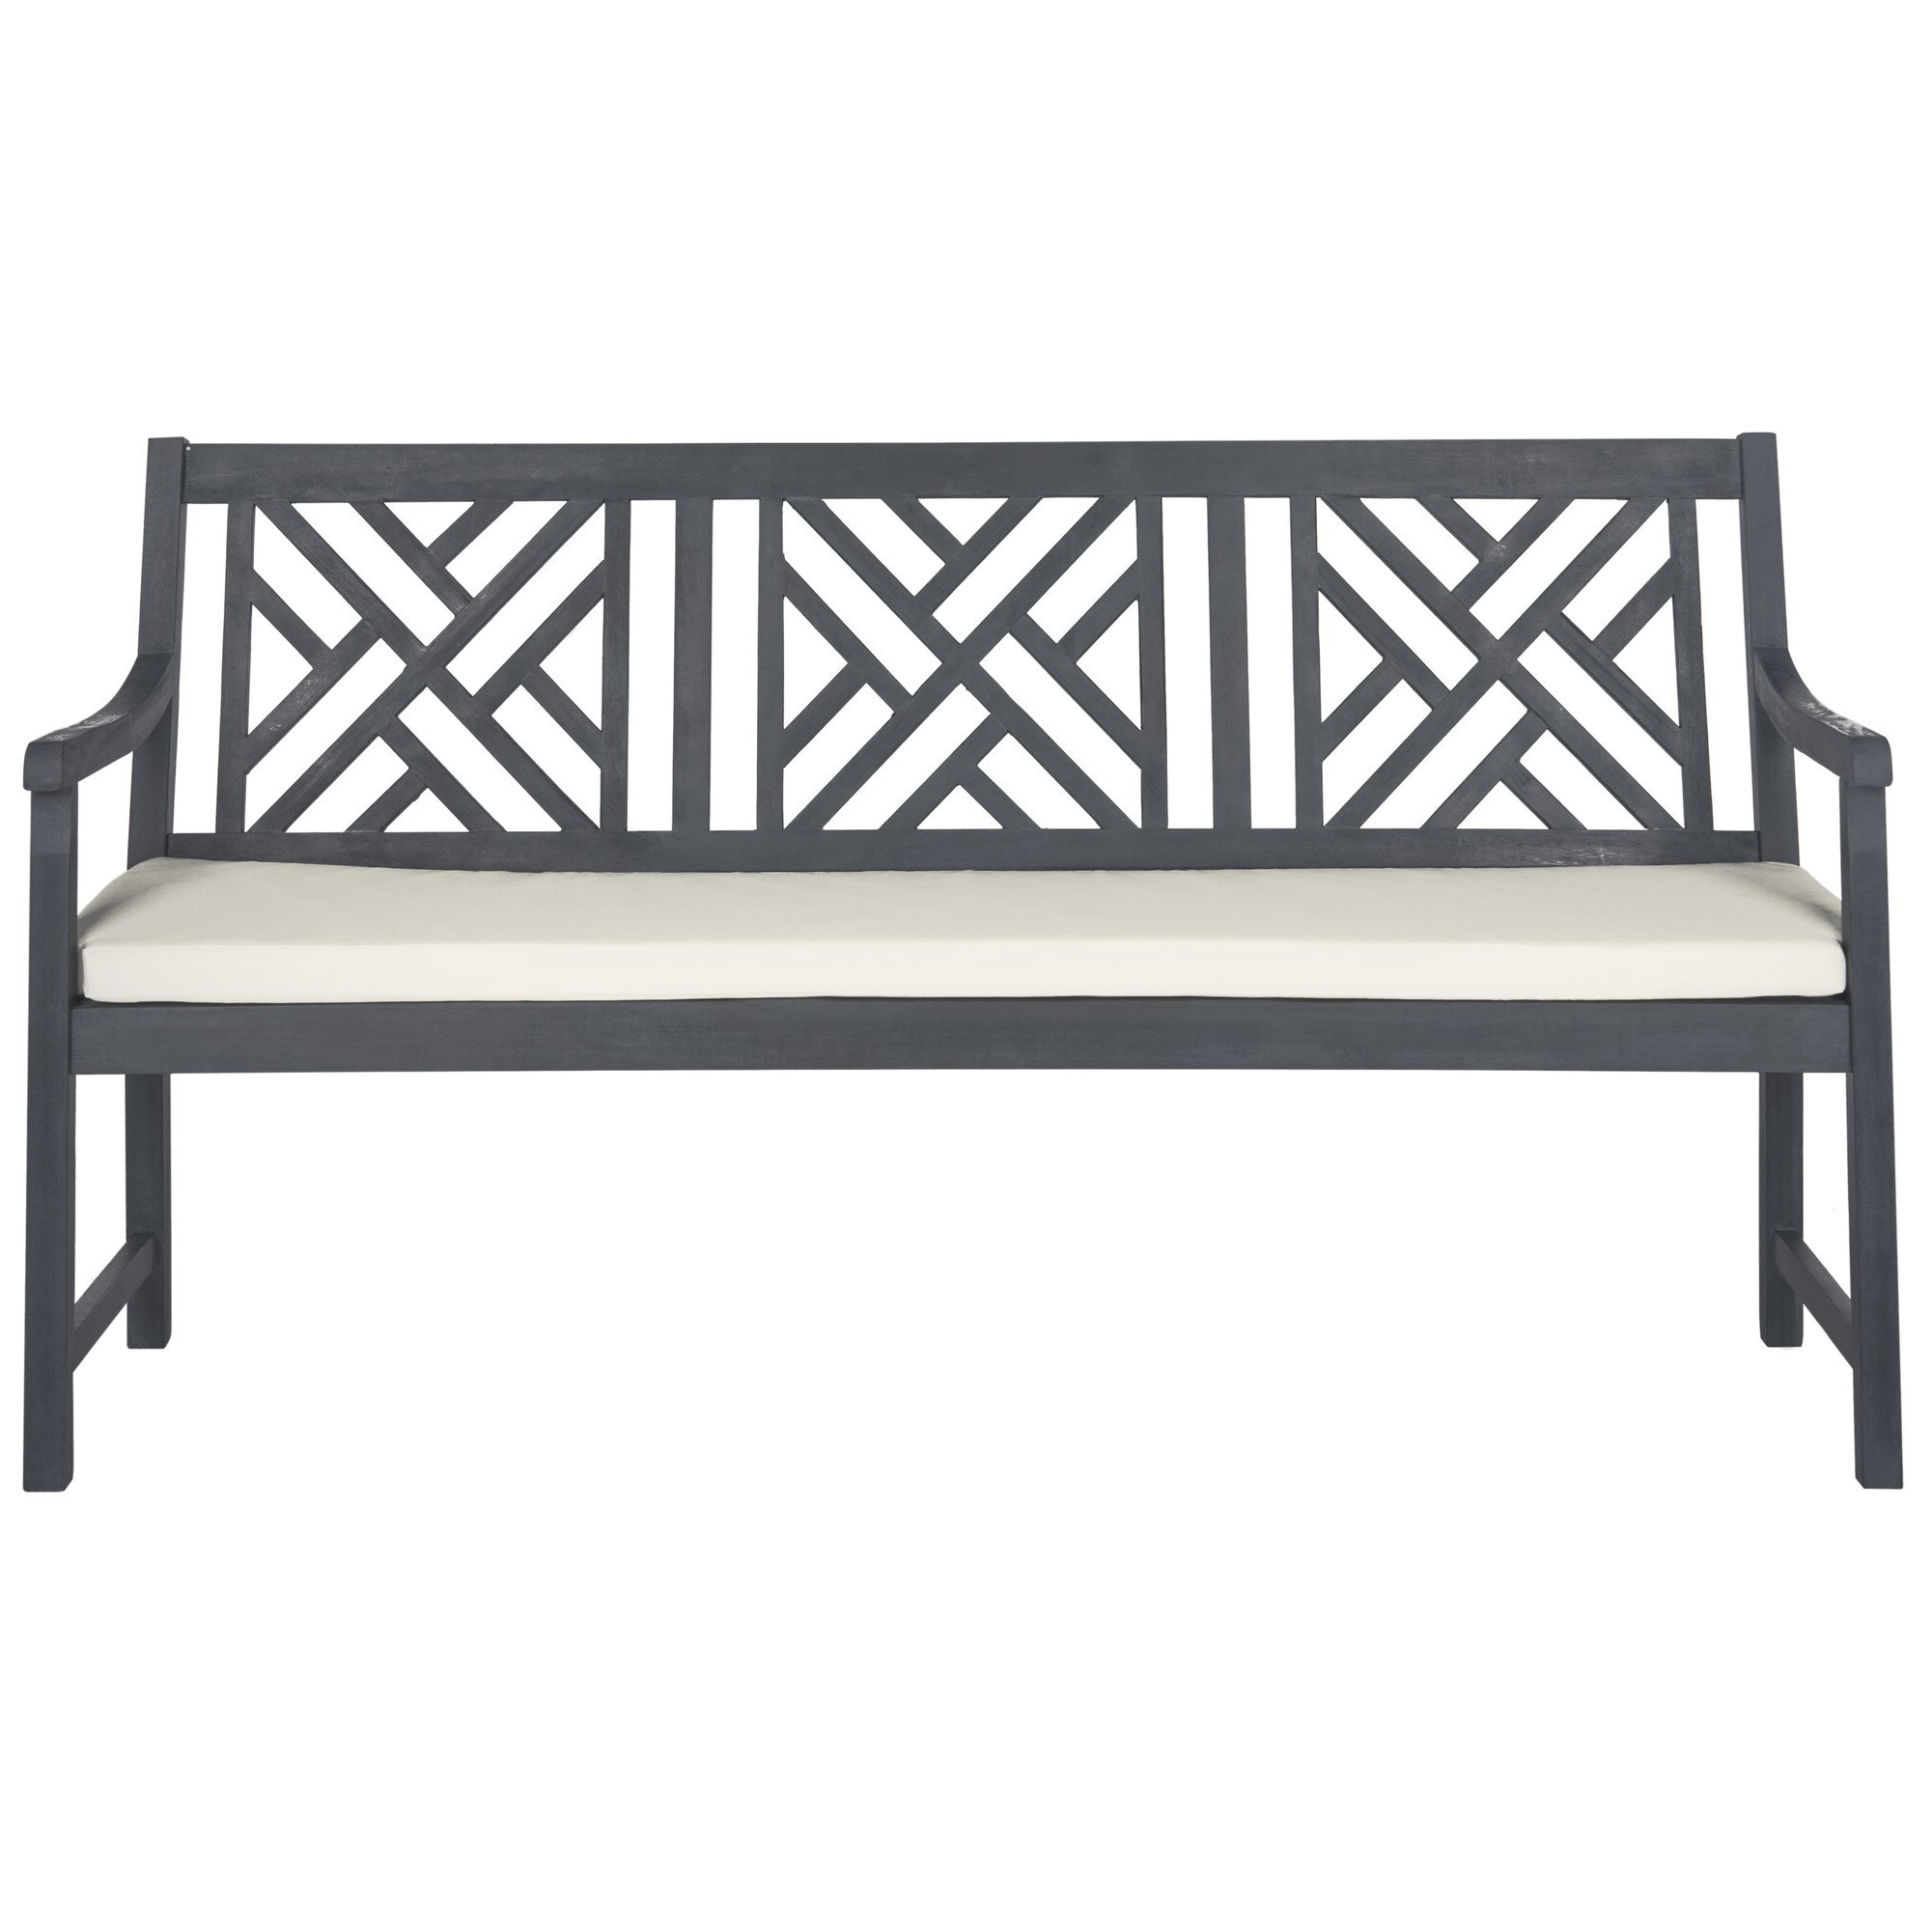 Most Recent Krystal Ergonomic Metal Garden Benches With Regard To With Arms Outdoor Benches You'll Love In  (View 7 of 30)